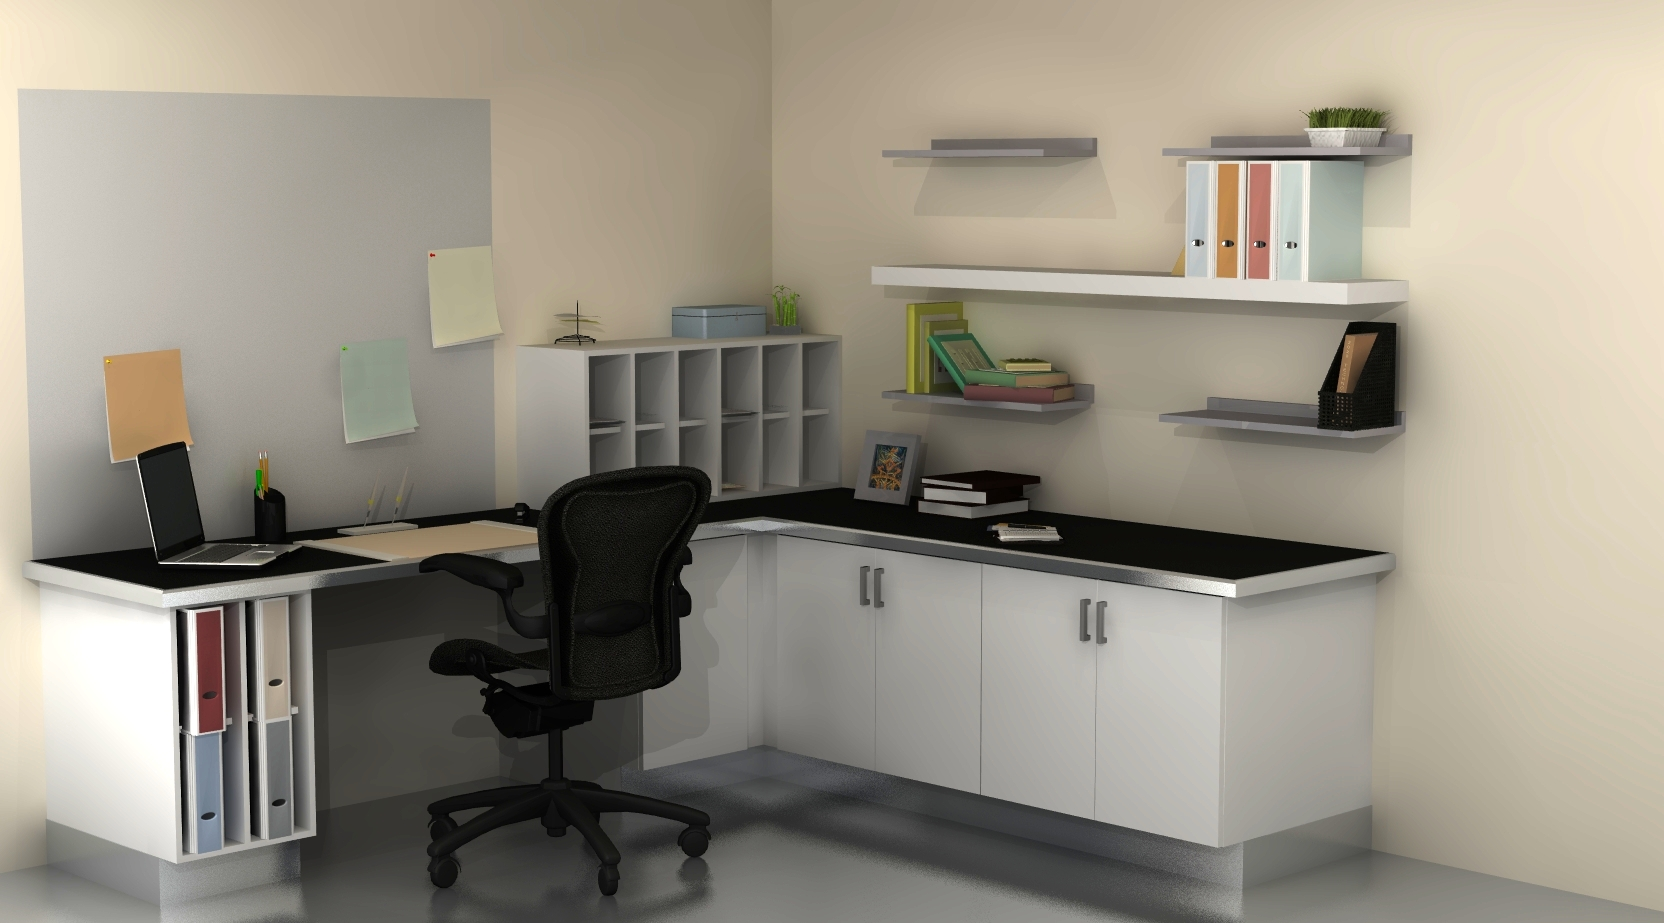 ikea office furniture desk. This Home Office Ikea Furniture Desk O